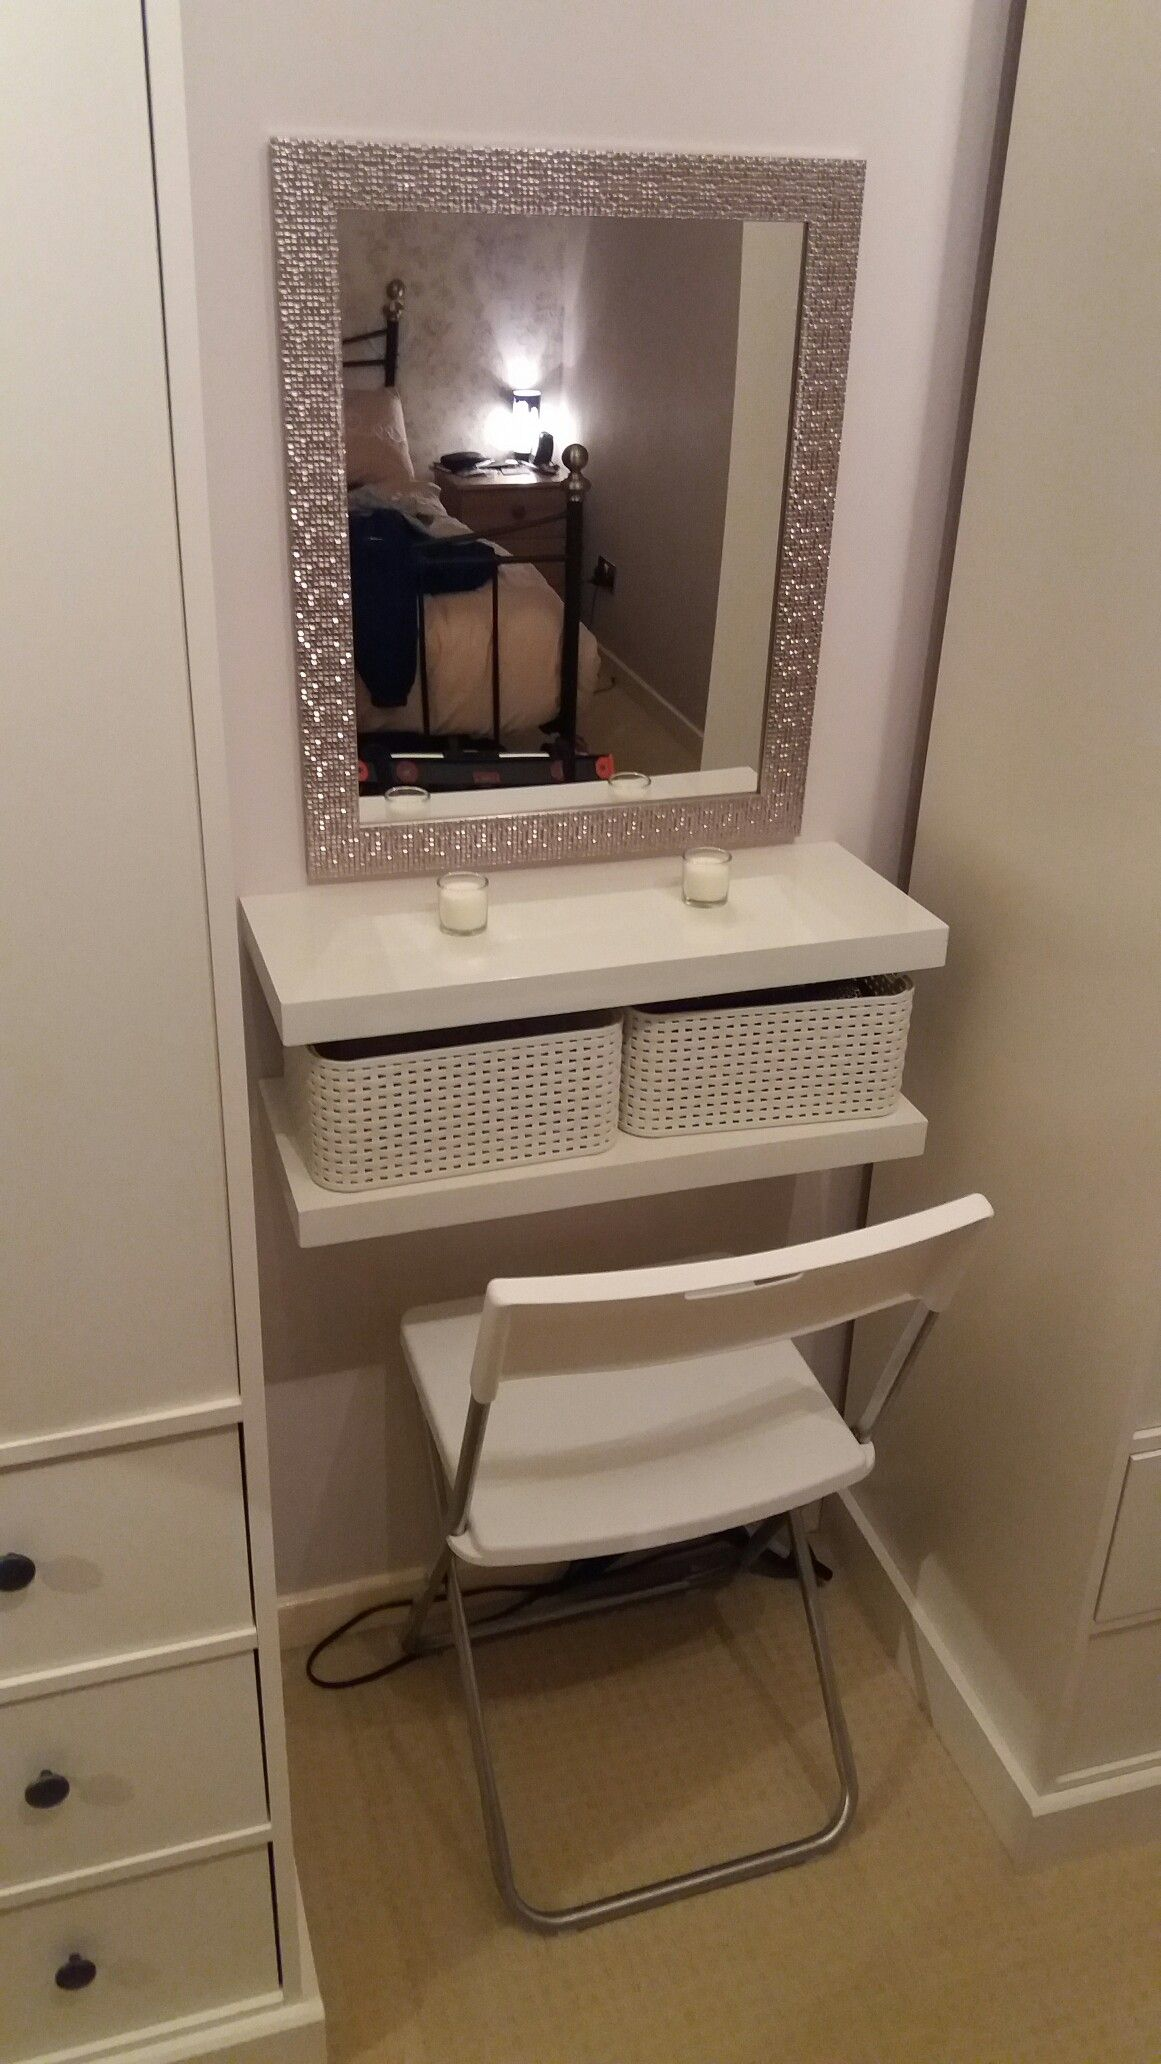 Merveilleux DIY Dressing Table. 2 Floating Shelves, Crates, Seat And Mirror.